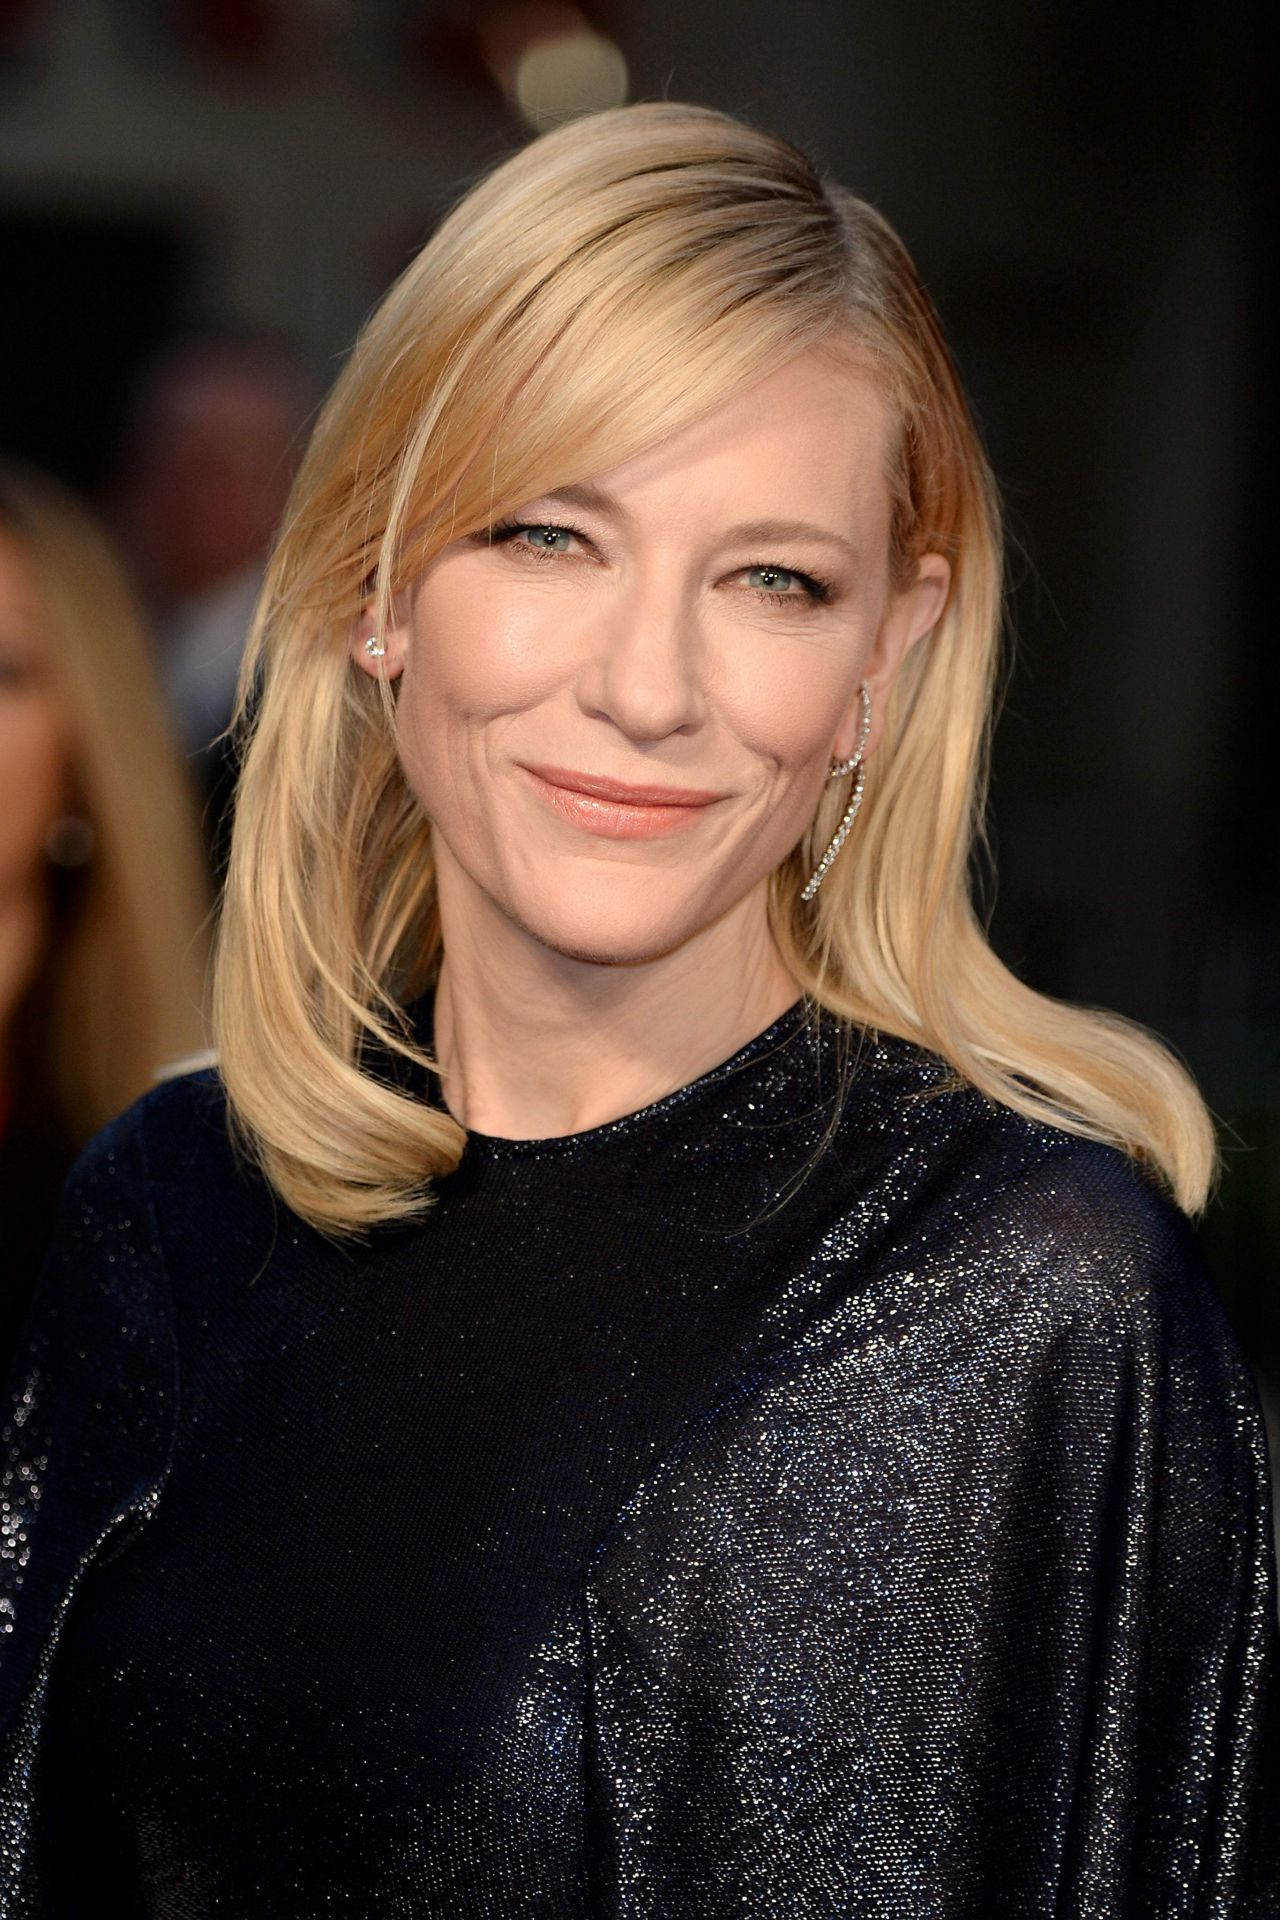 Cate Blanchett on Red Carpet Cate Blanchett